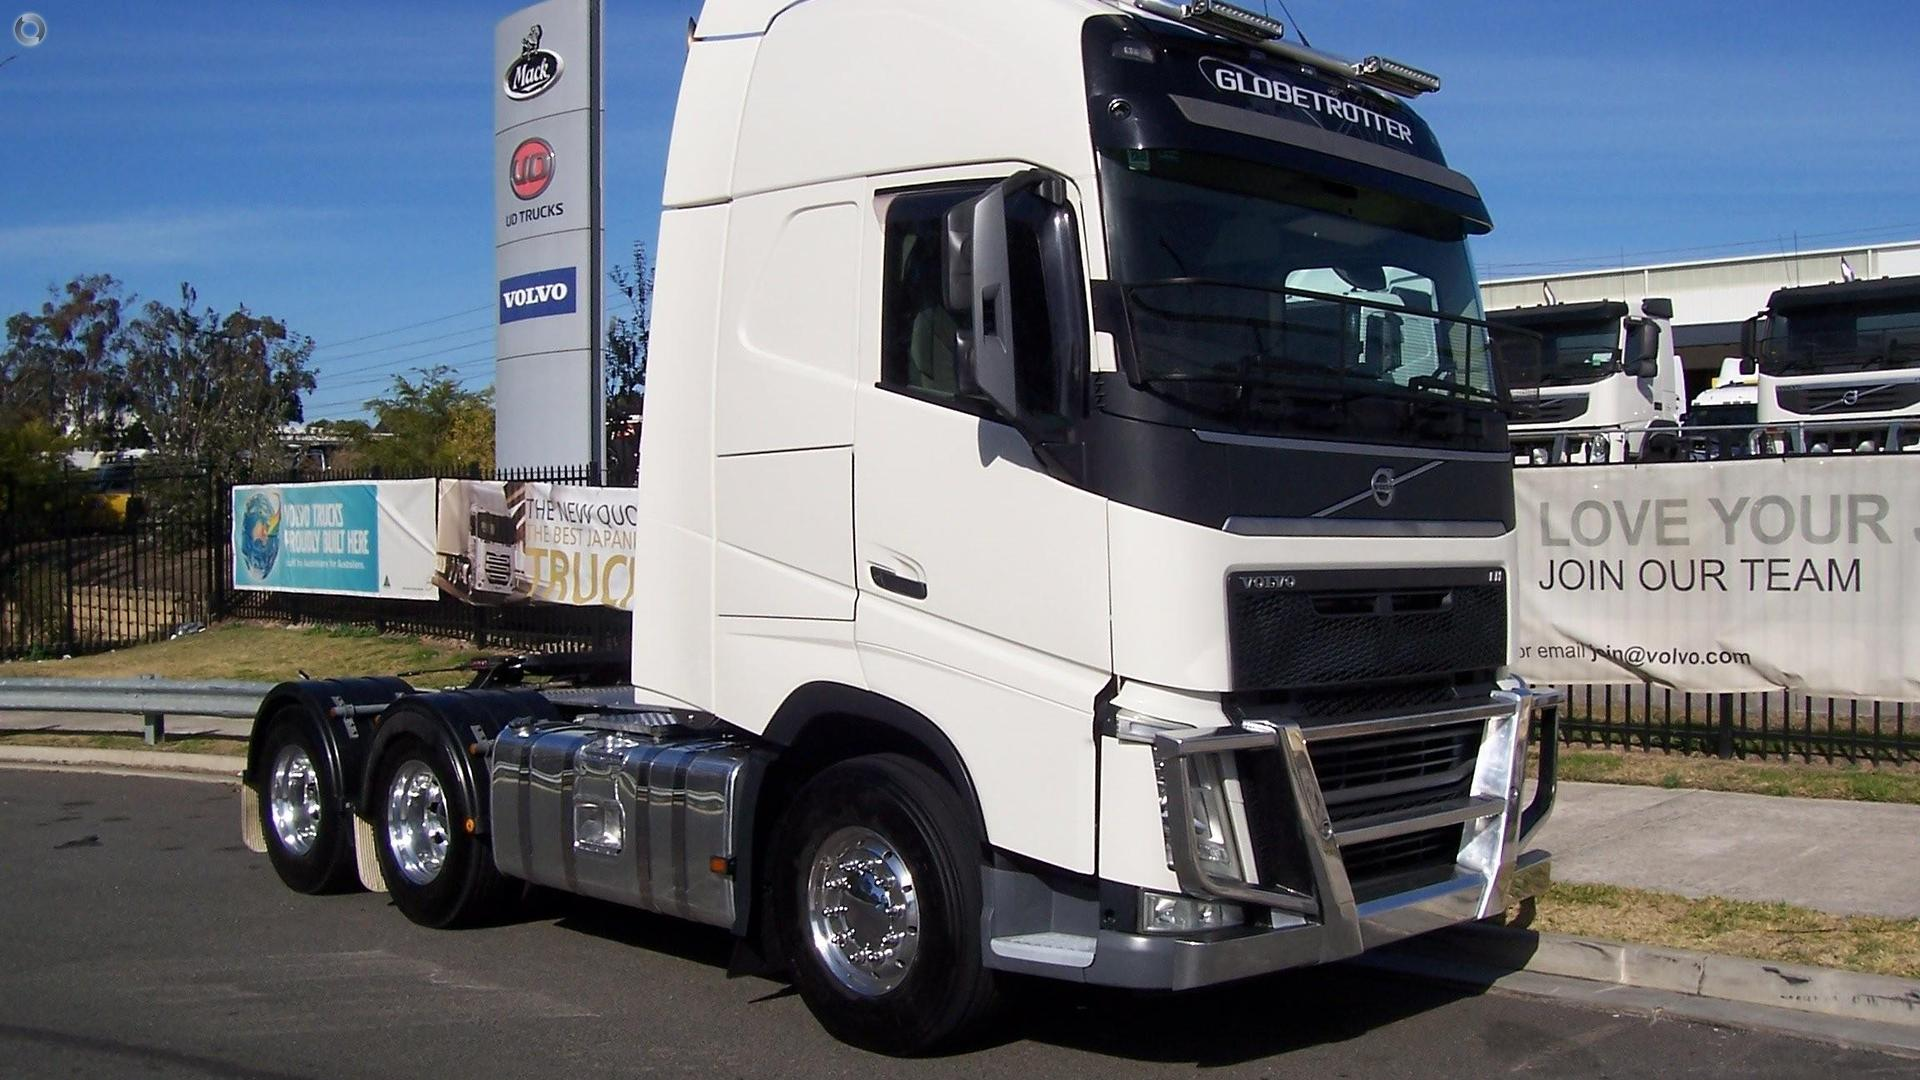 2014 Volvo FH540 Globetrotter